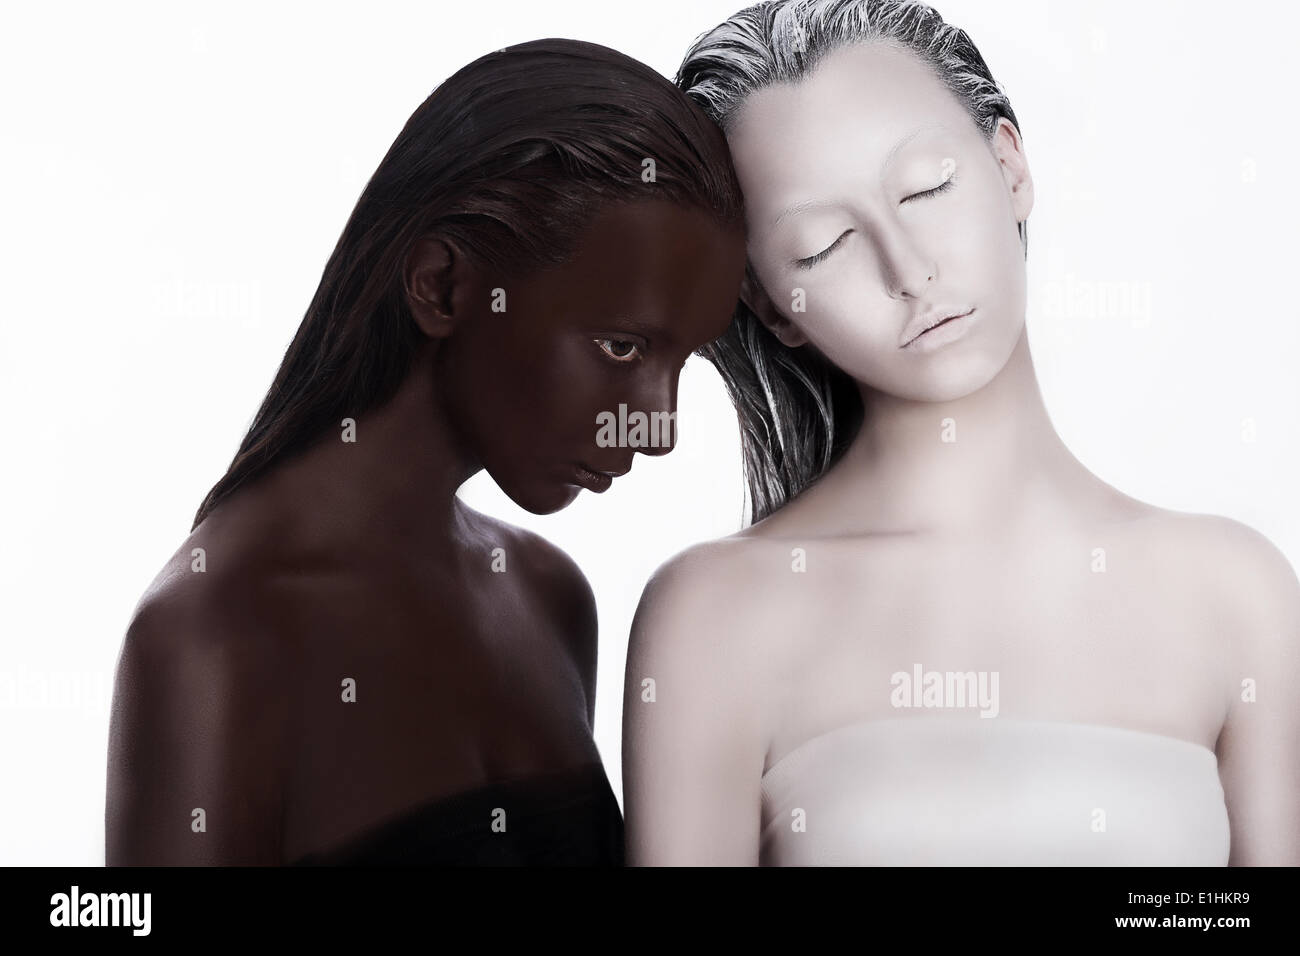 Multiracial Multicultural Concept. Ethnicity. Women Colored Brown and White. Devotion Stock Photo